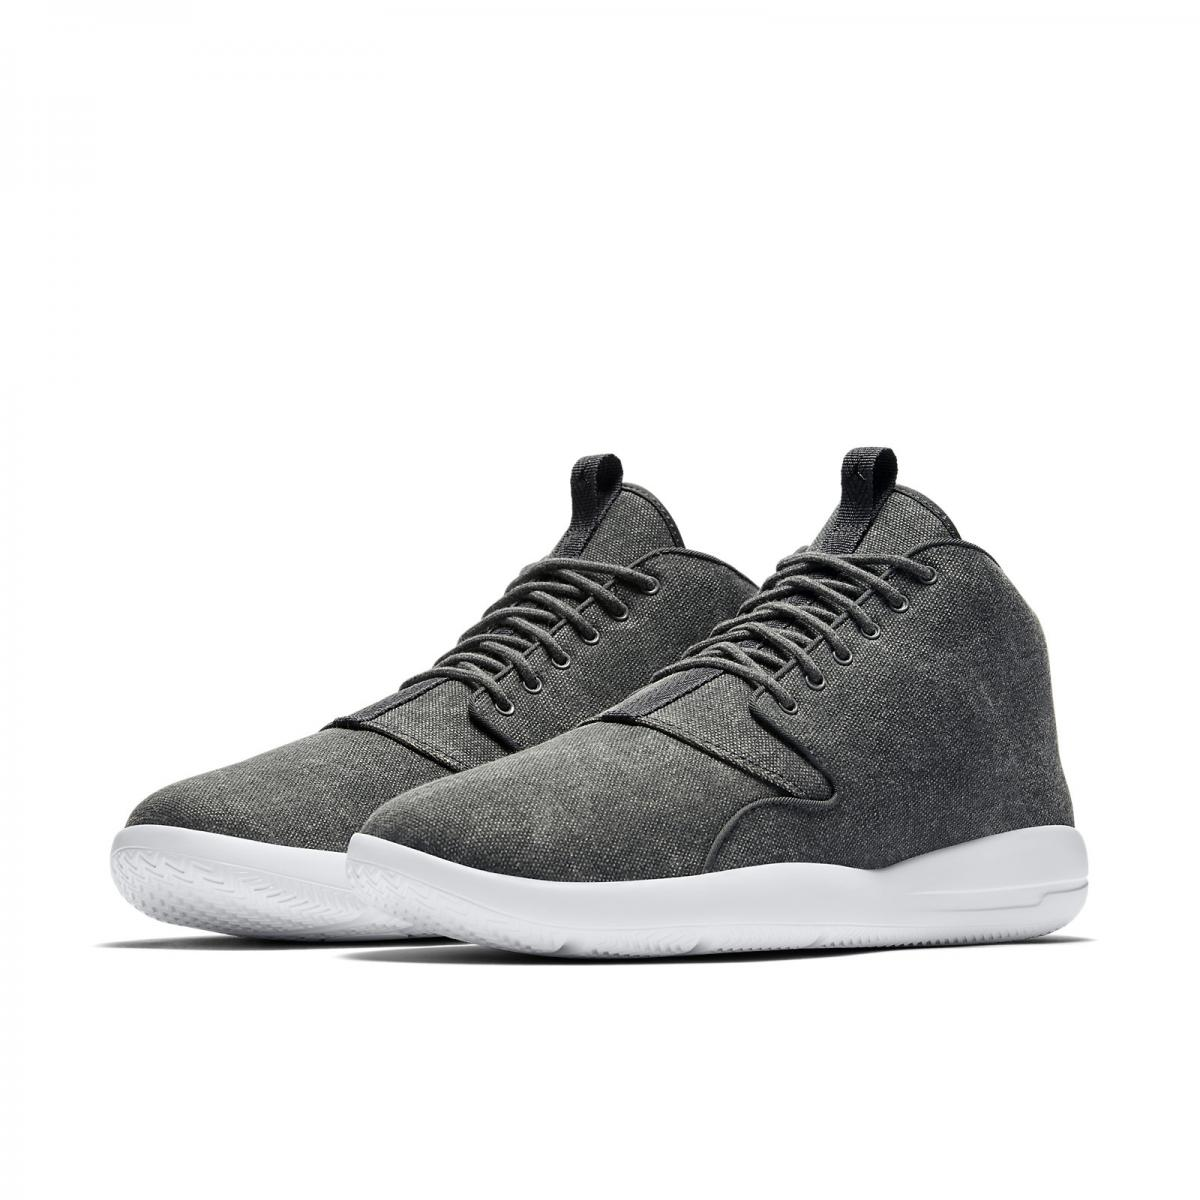 Jordan Eclipse Chukka AnthraDK 881453 006